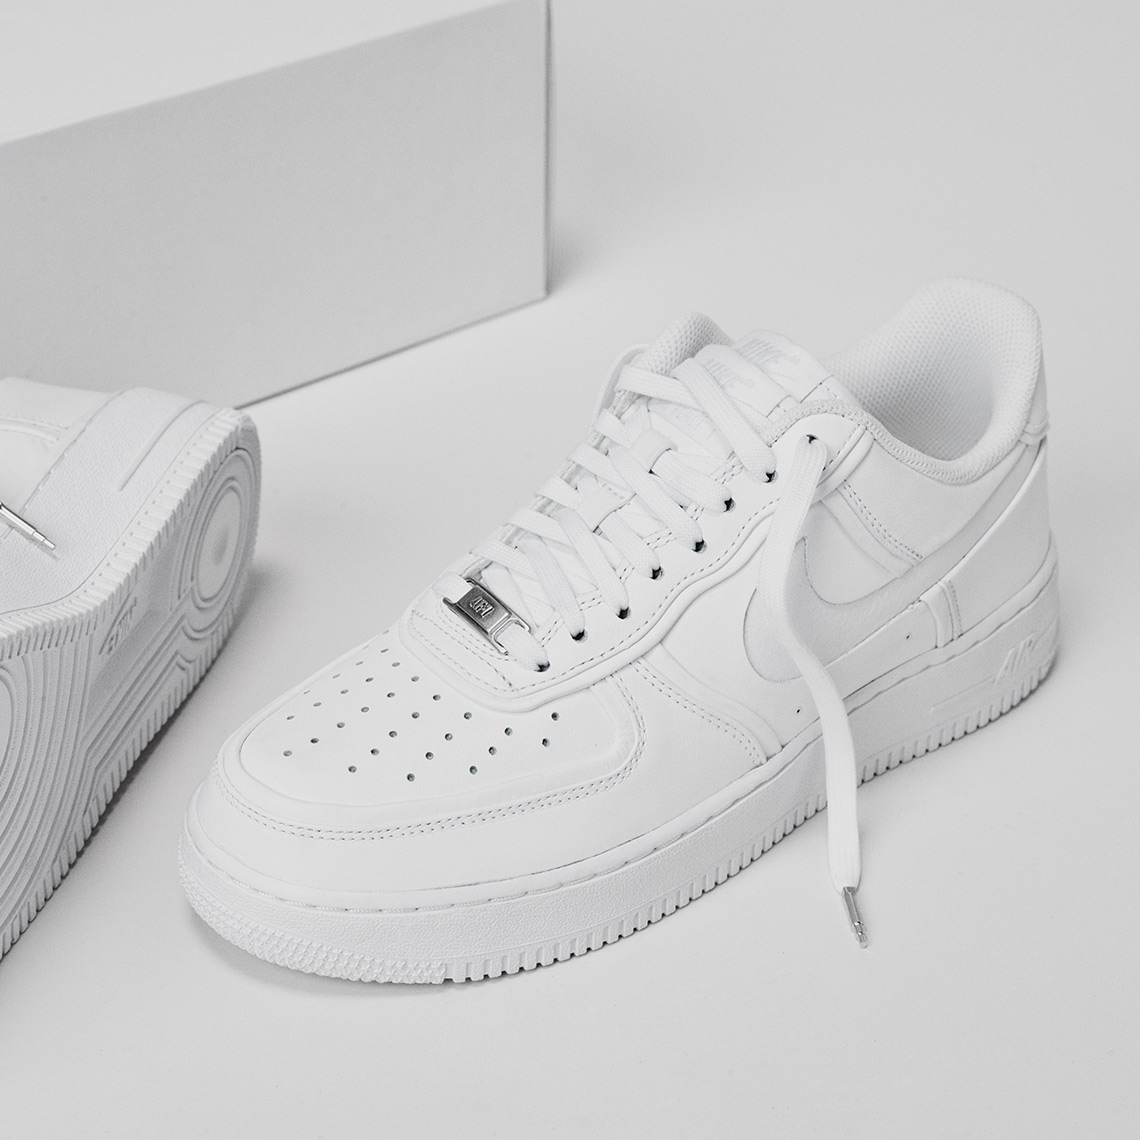 nike air force 1 low release date